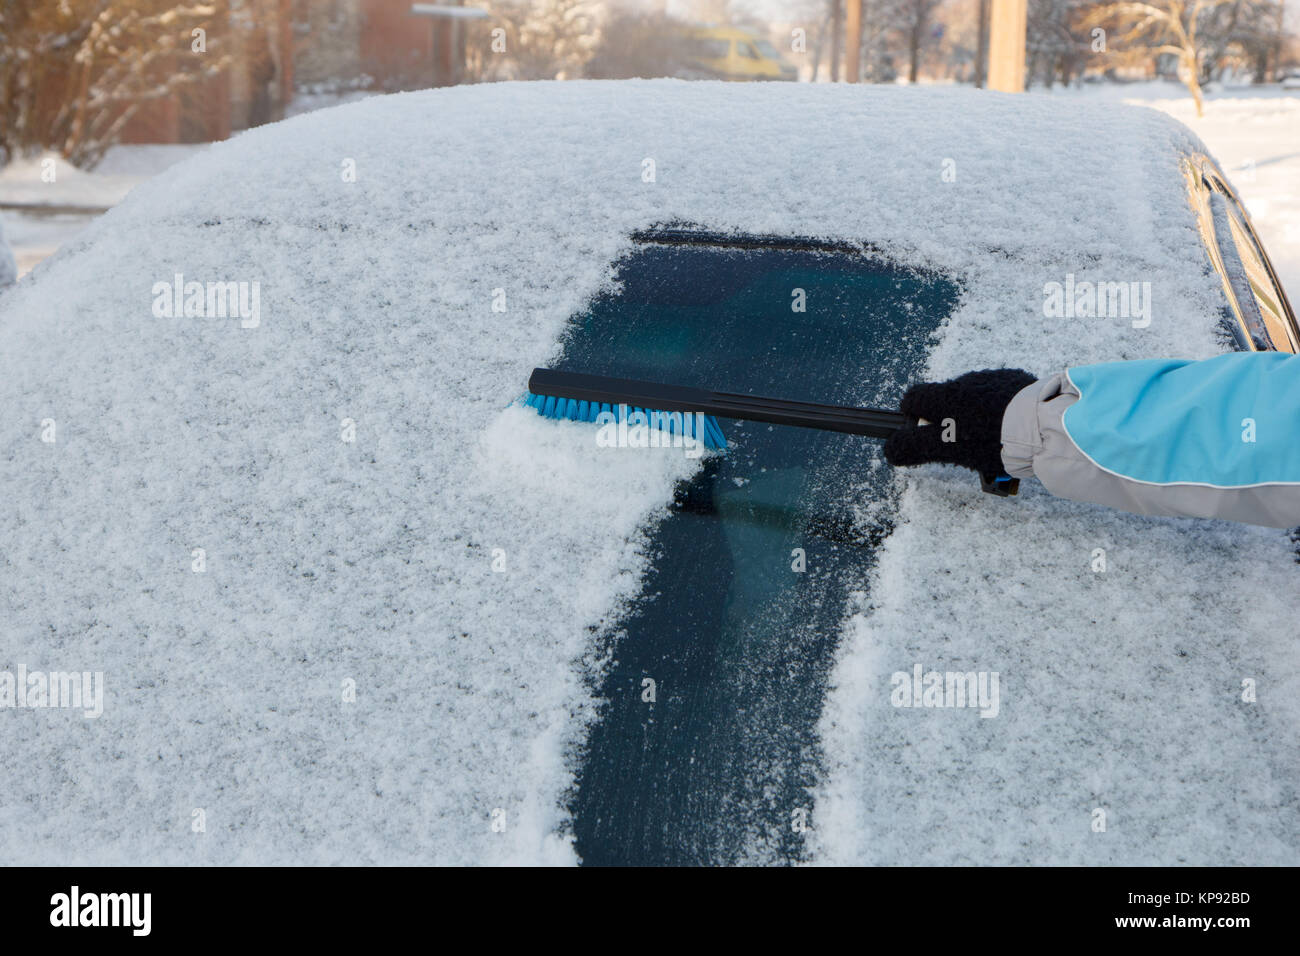 Clearing snow off a car - Stock Image